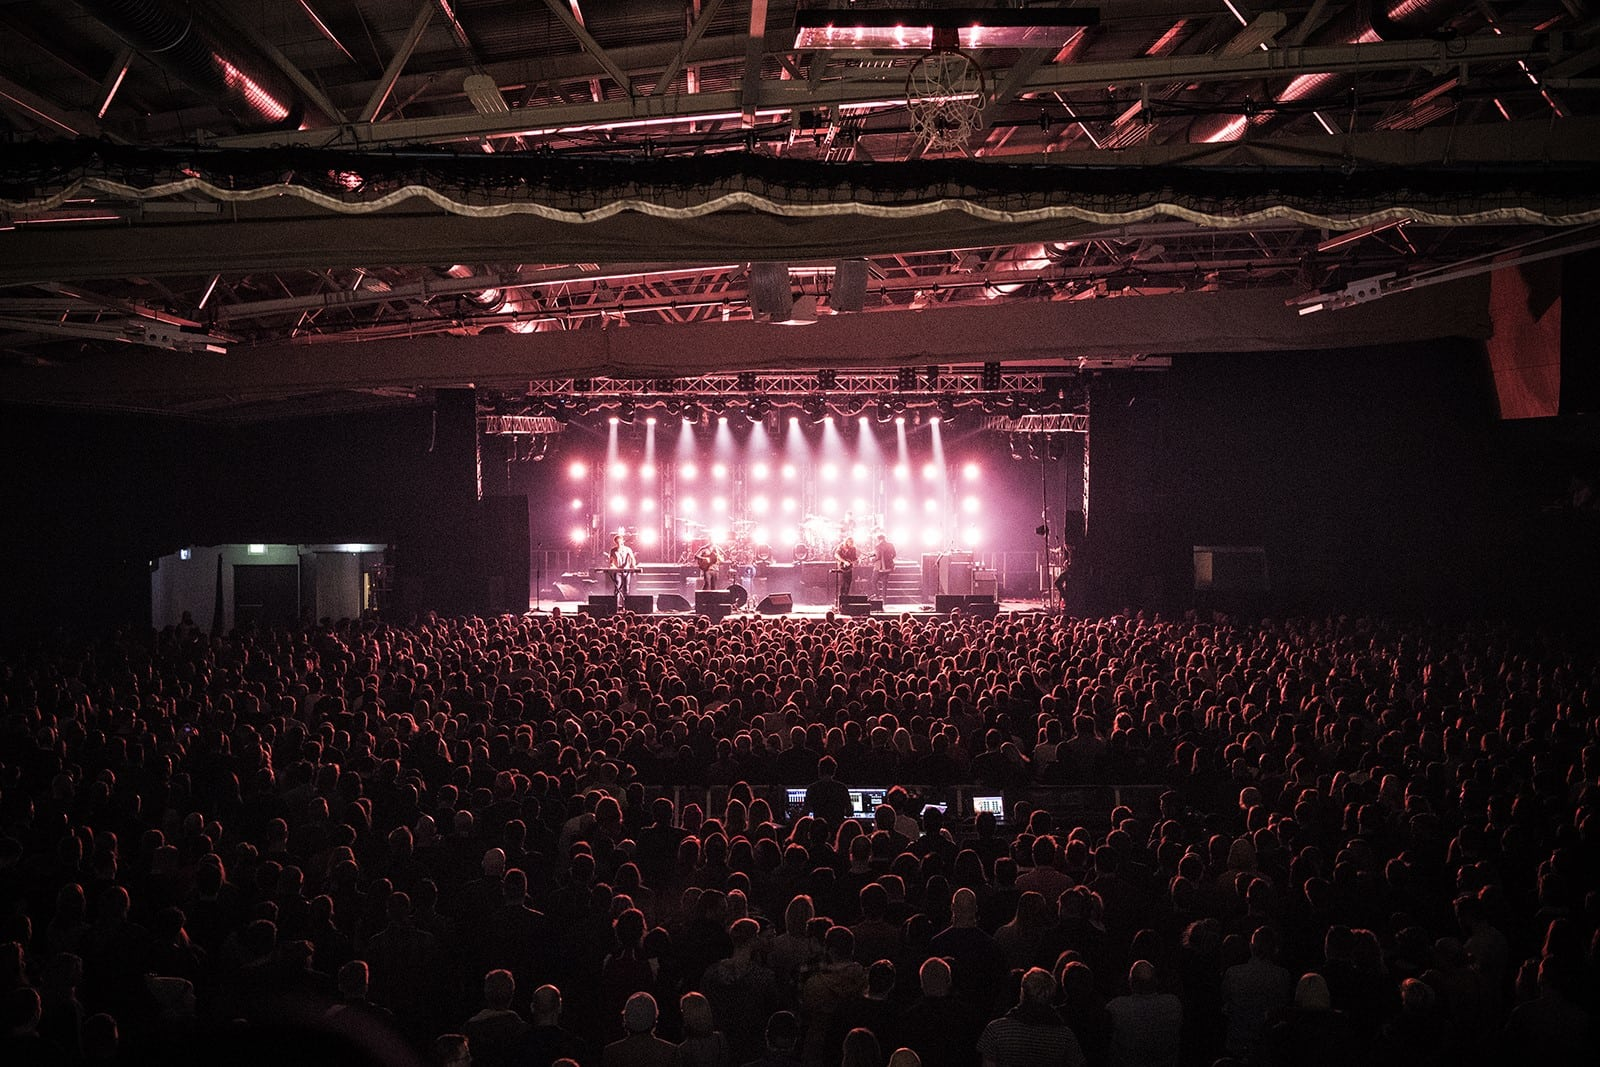 Mumford and Sons perform to a packed crowd onstage at Iceland Airways in 2017